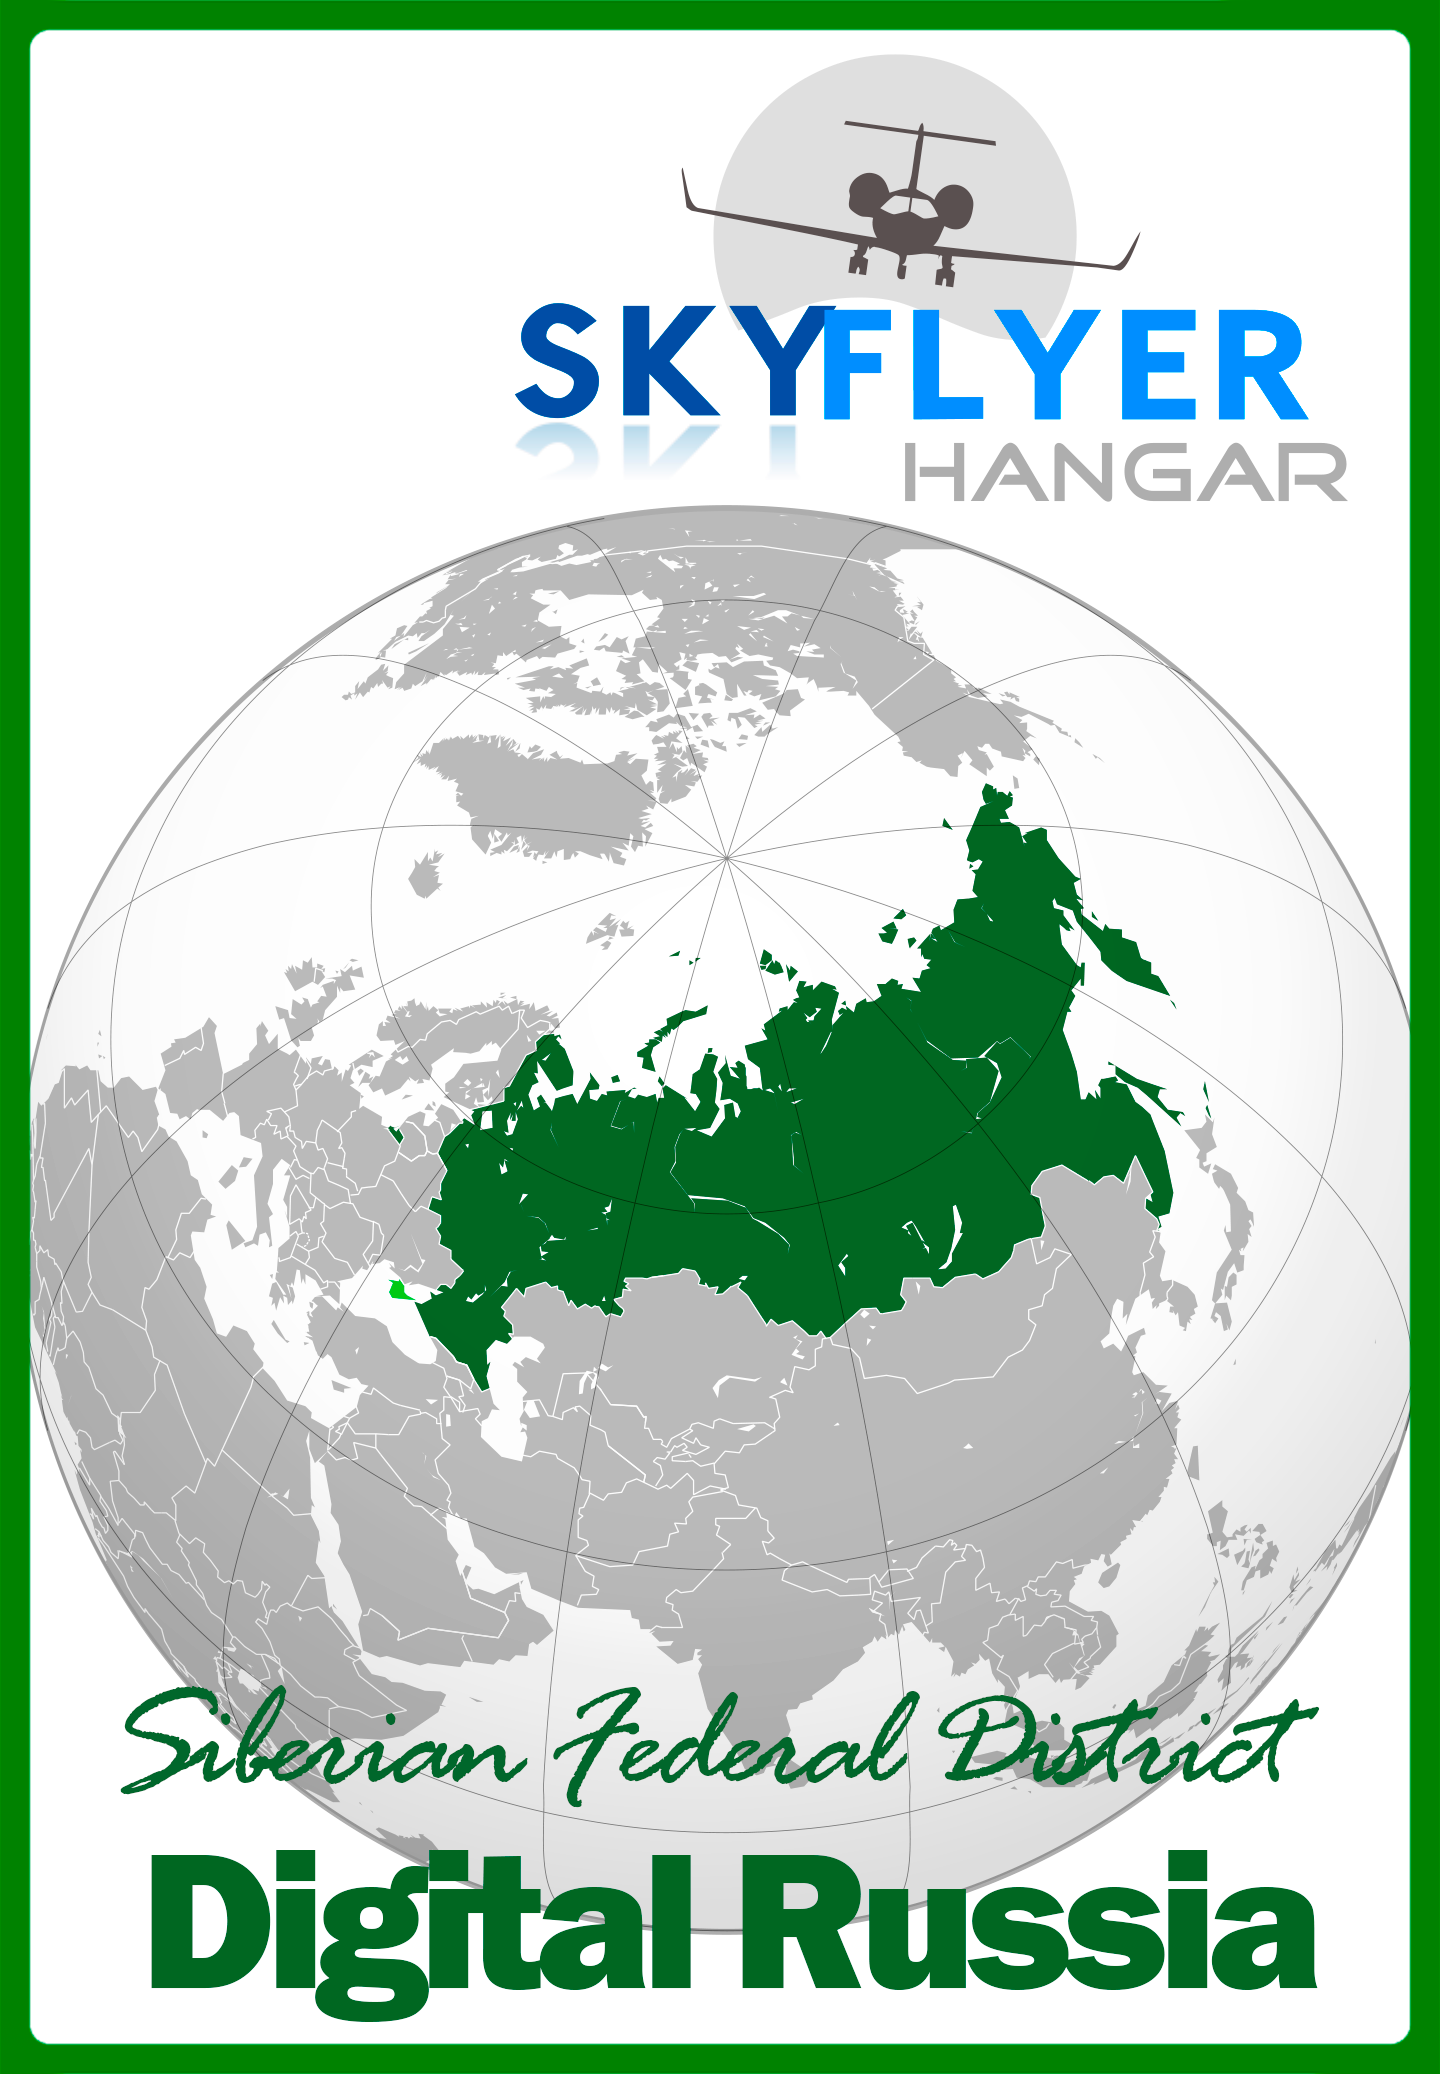 SKY FLYER HANGAR - DIGITAL RUSSIA SIBERIAN FEDERAL DISTRICT P3D